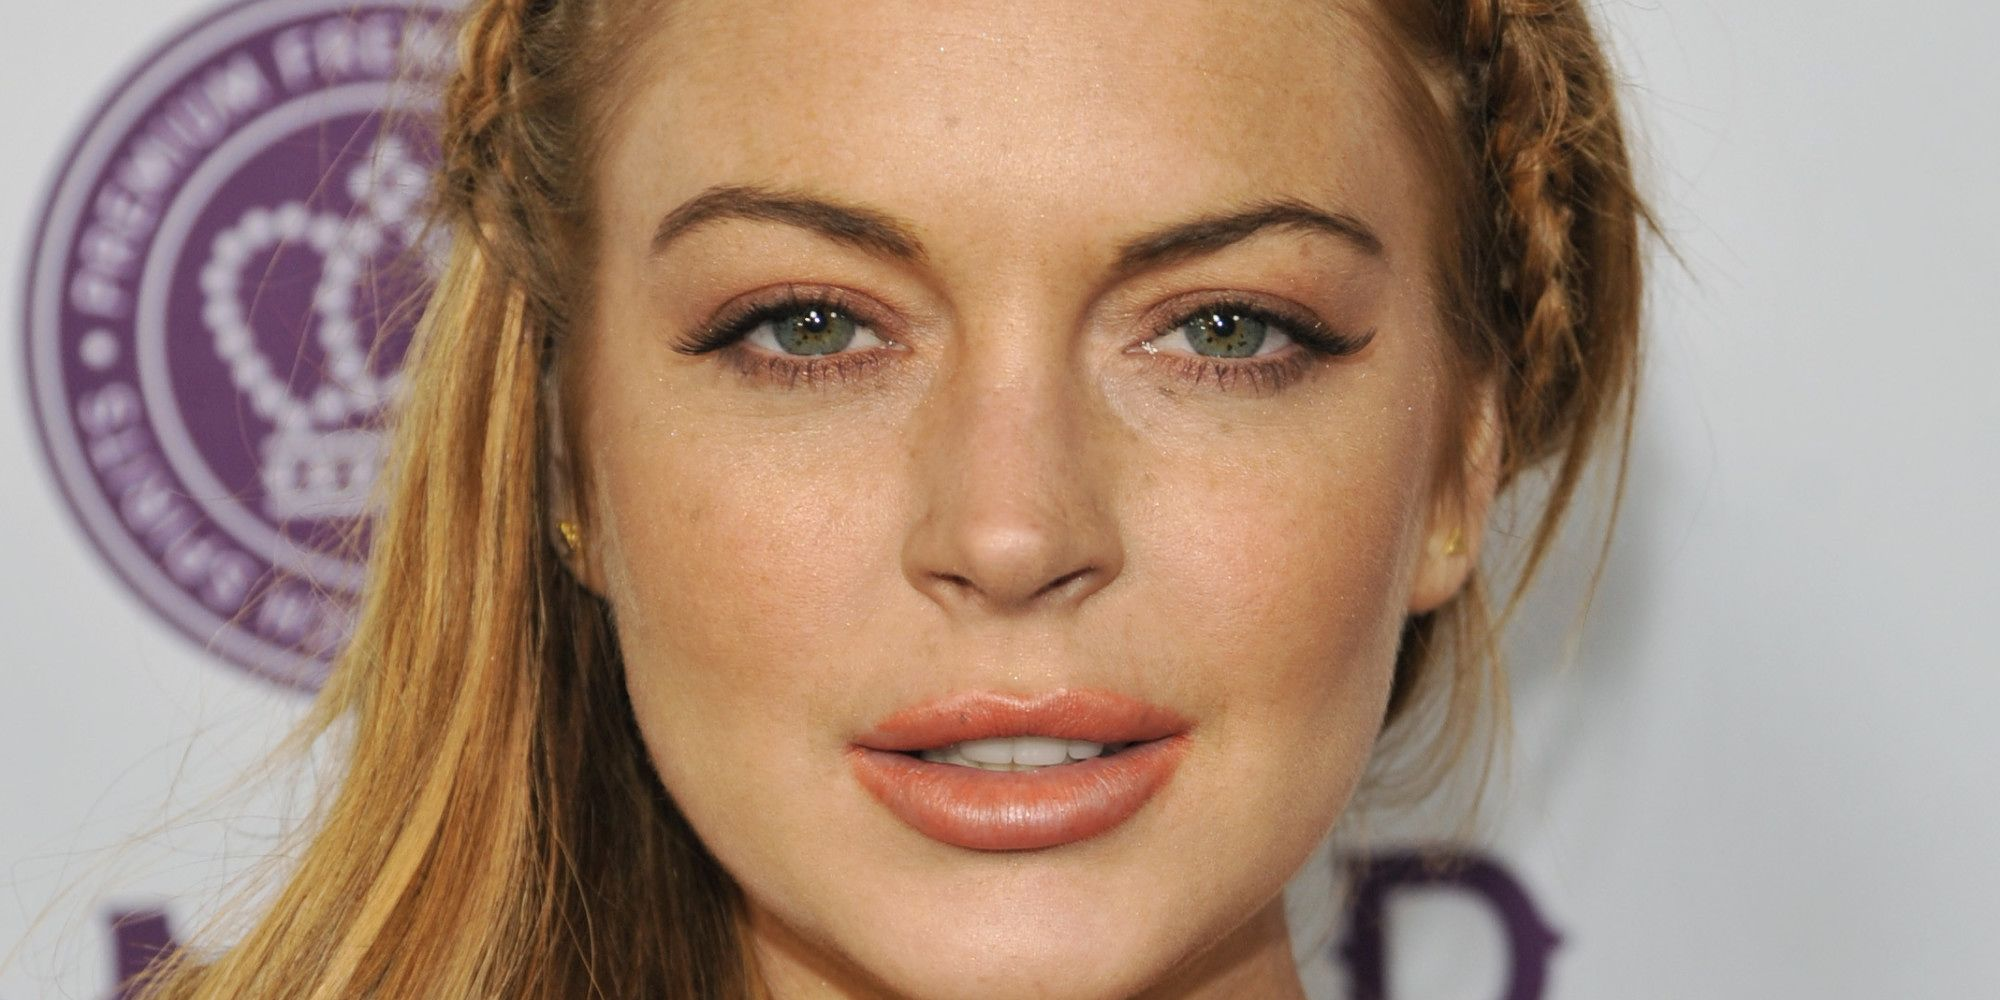 lindsay-lohan-vs-werewolves-yes-that-s-actually-happening-842768-1